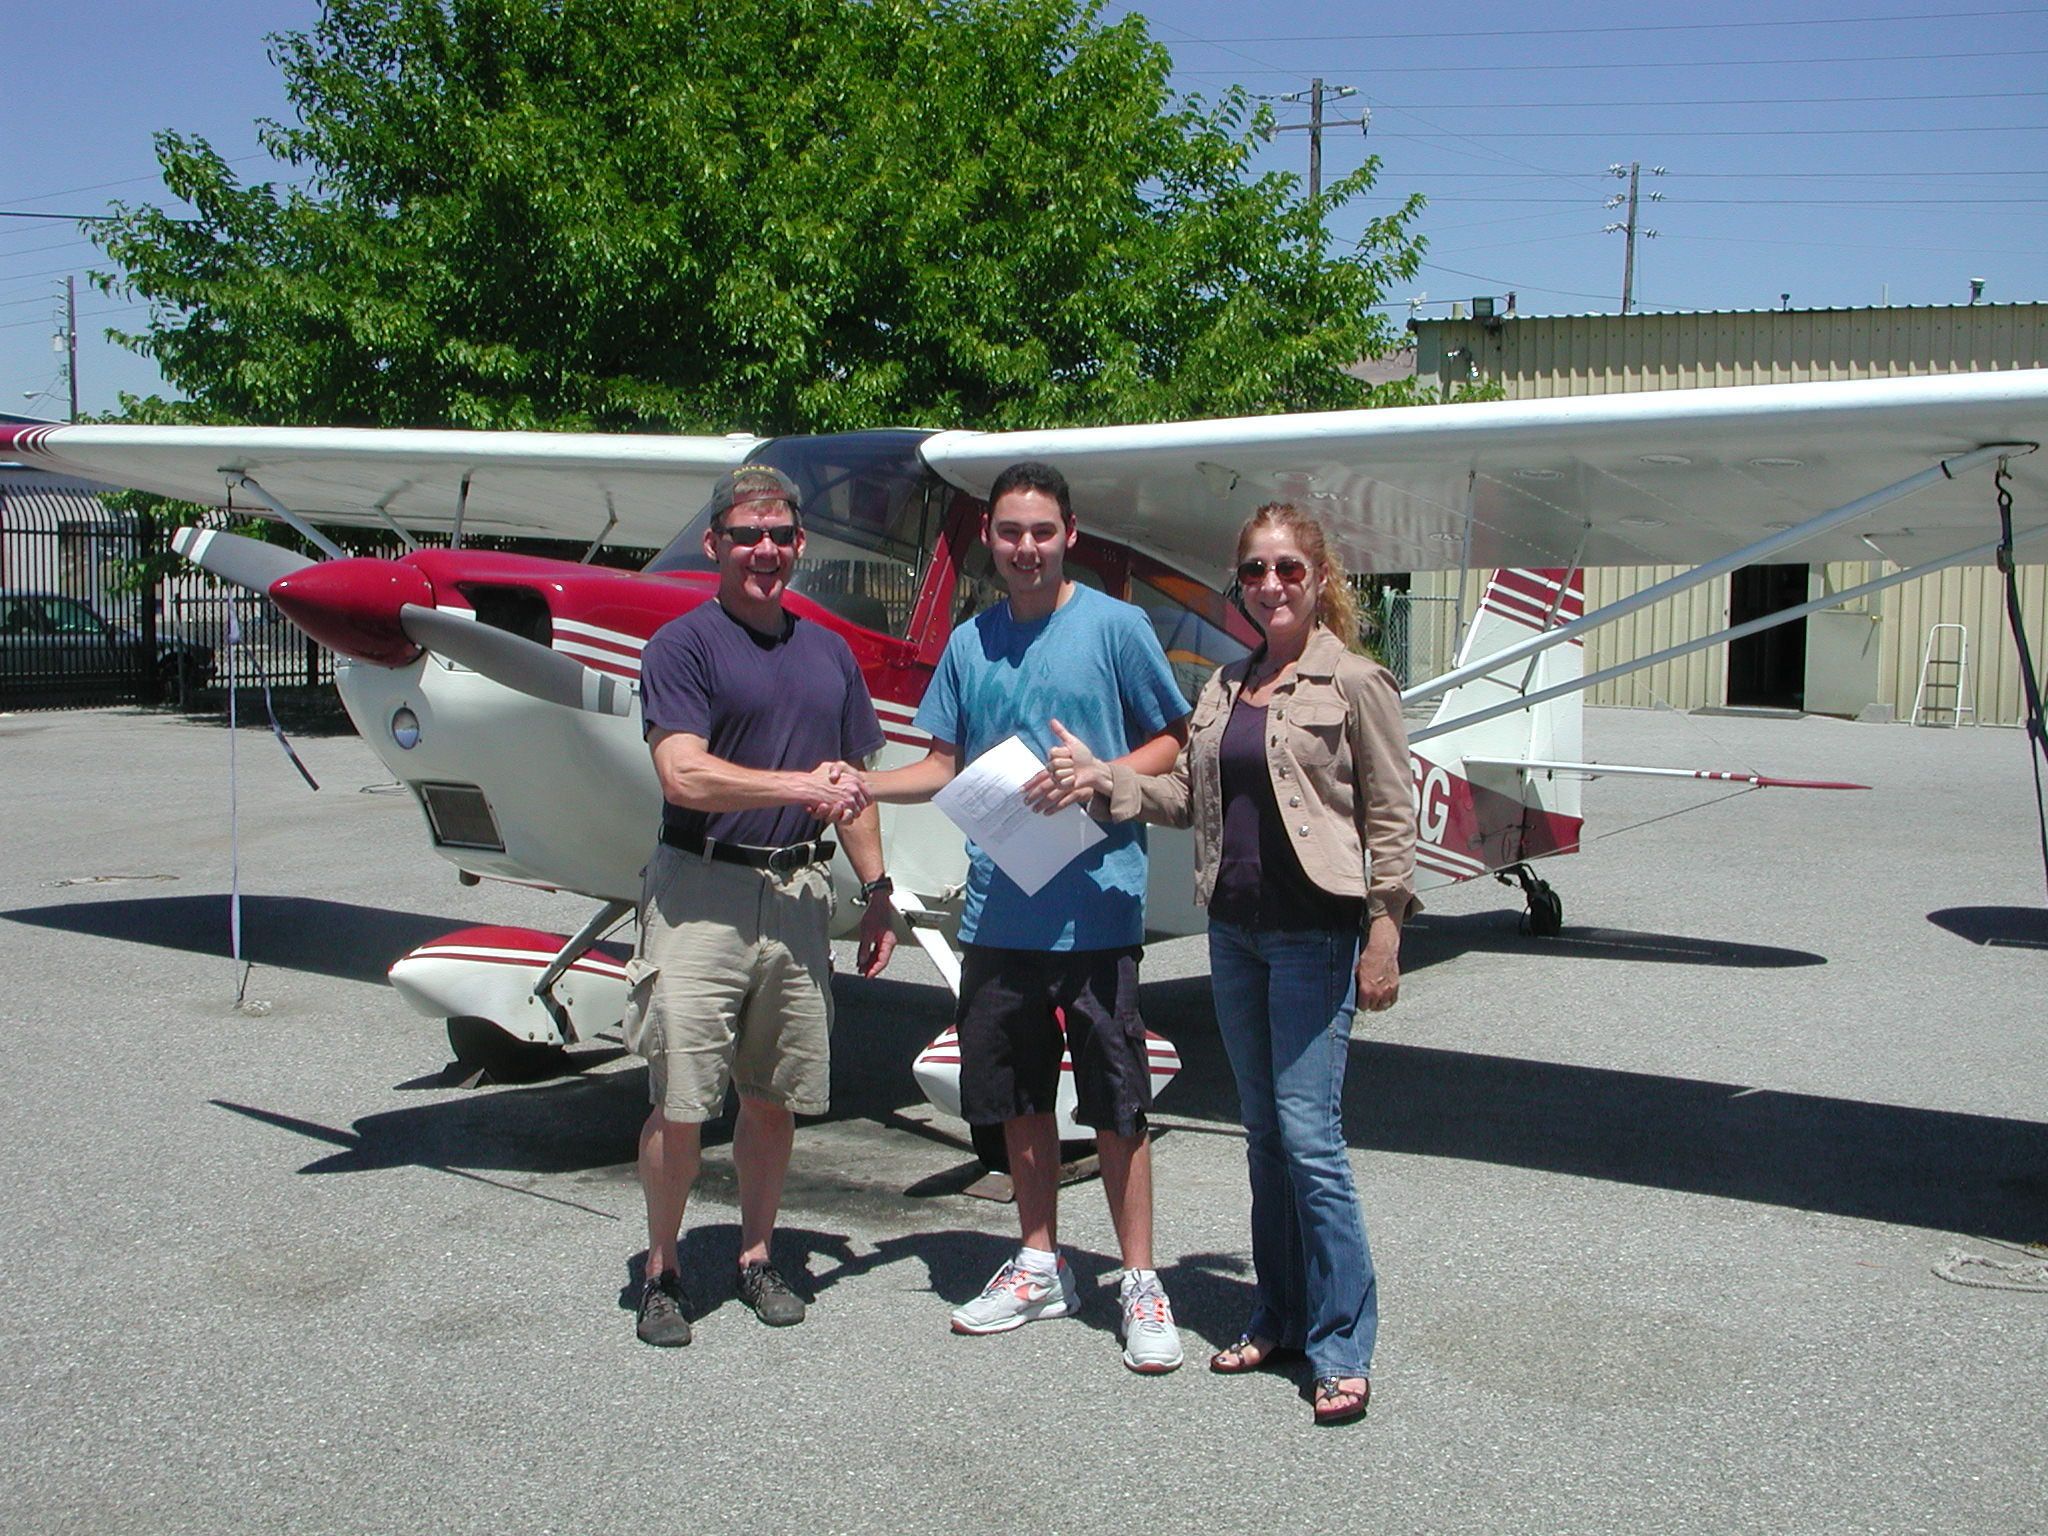 Ahrash Aleshi passes private pilot checkride at AeroDynamic Aviation located at Reid Hillview Airport in San Jose, CA.